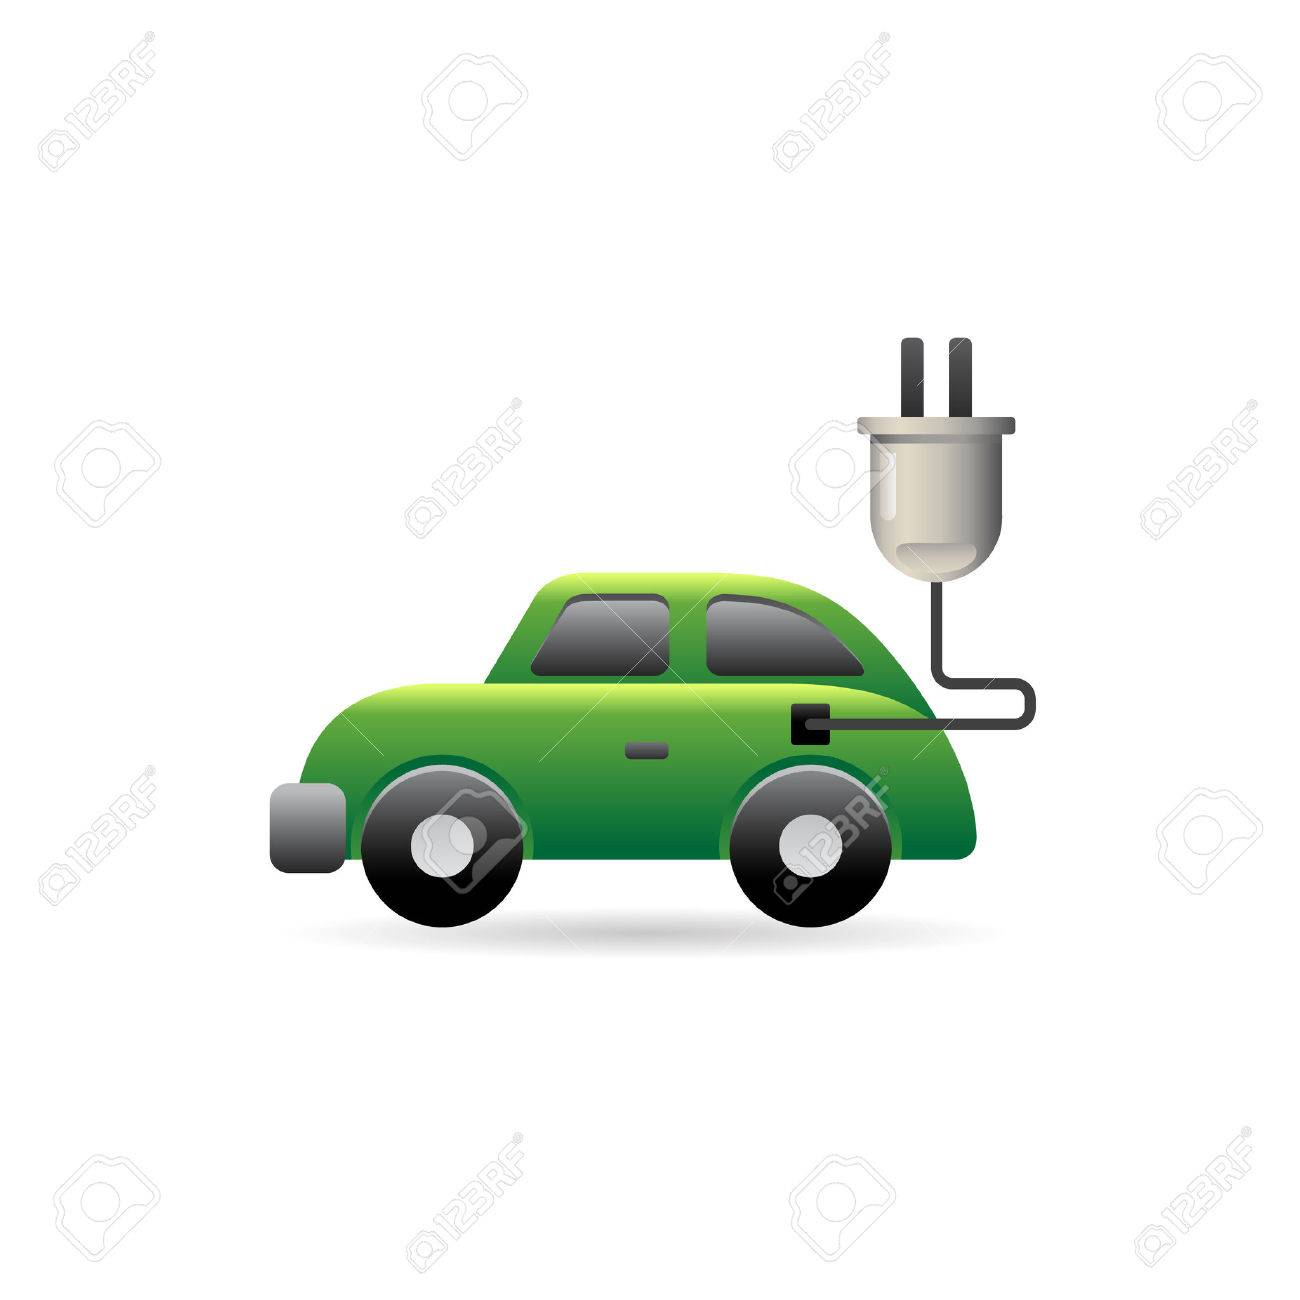 Electric car icon in color. Vehicle environment - 71631285